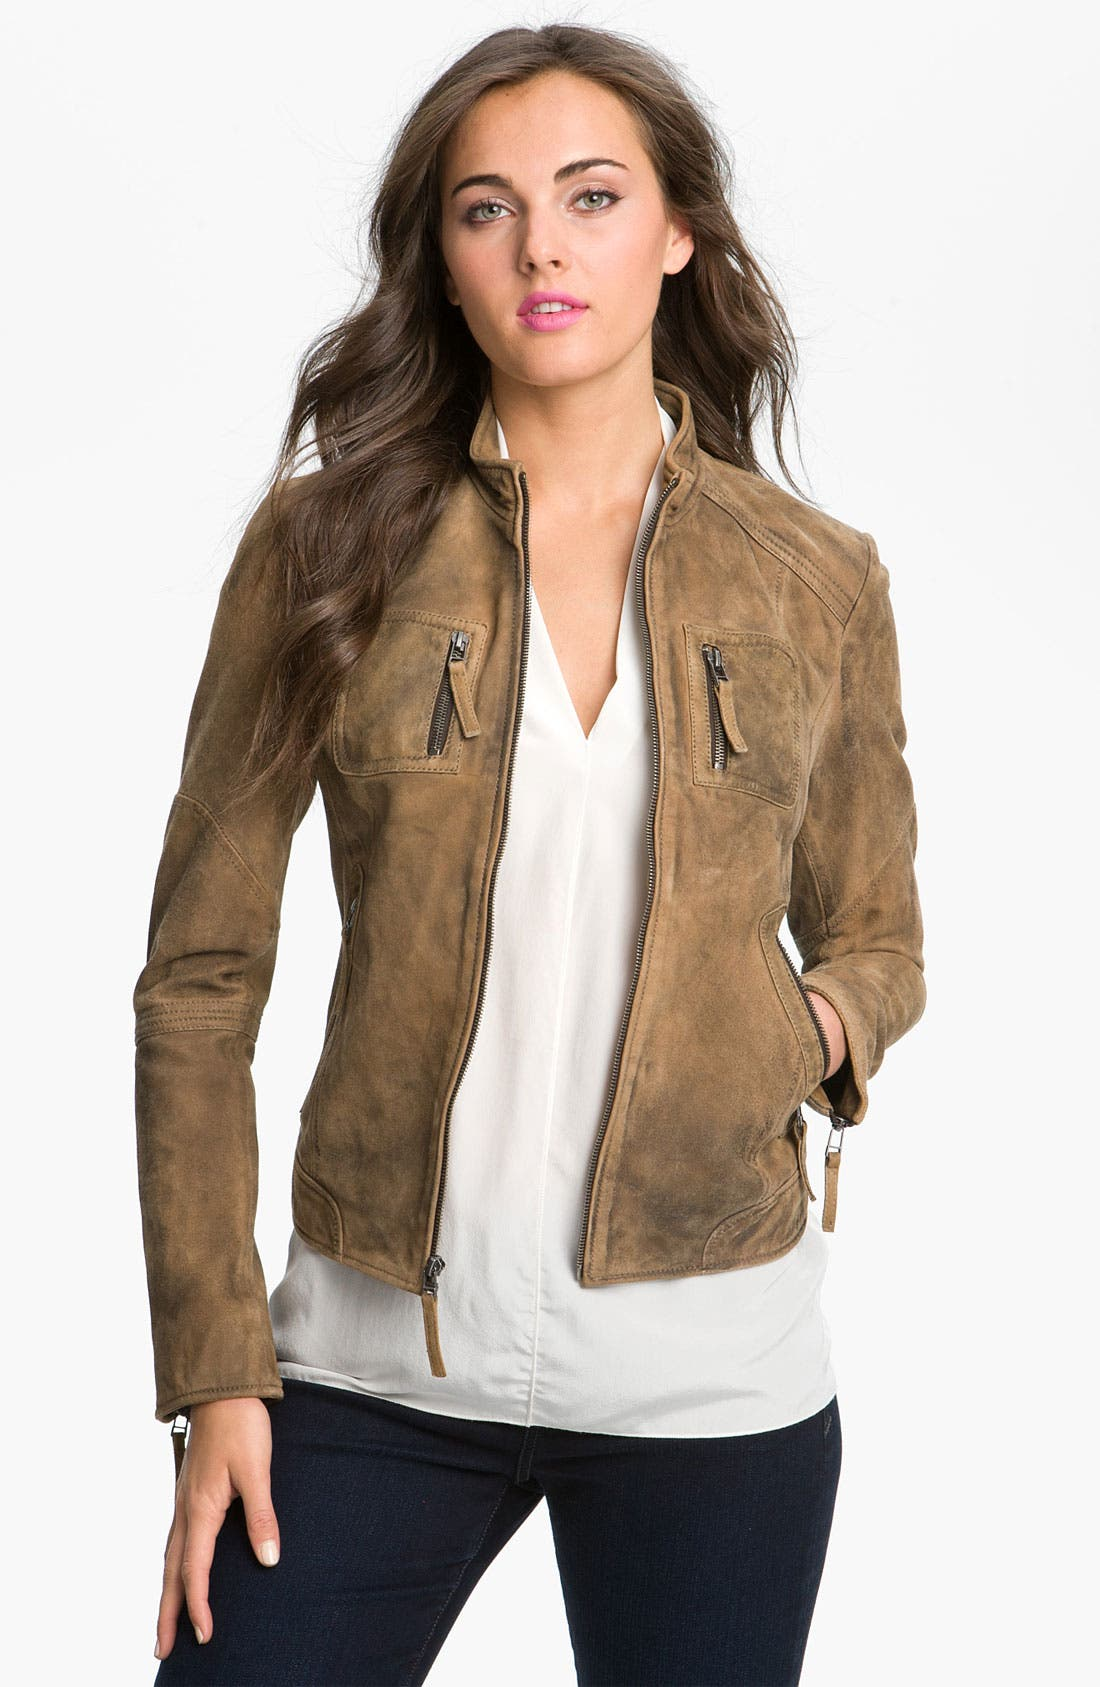 Alternate Image 1 Selected - Buffalo by David Bitton Distressed Leather Jacket (Online Only)